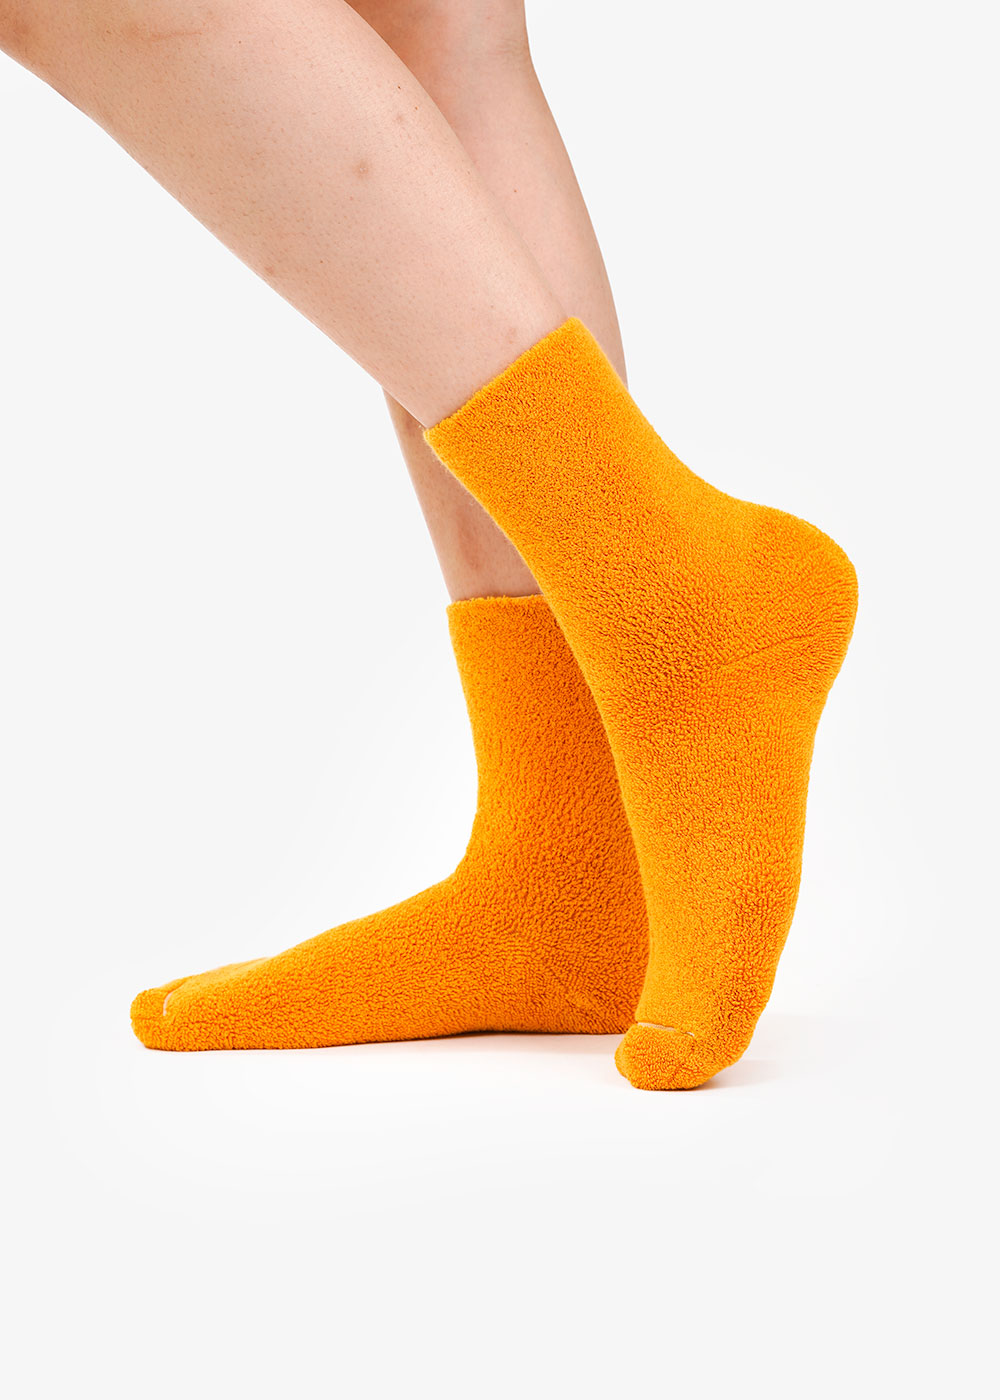 Baserange Braid Yellow Buckle Overankle Socks — Shop sustainable fashion and slow fashion at New Classics Studios